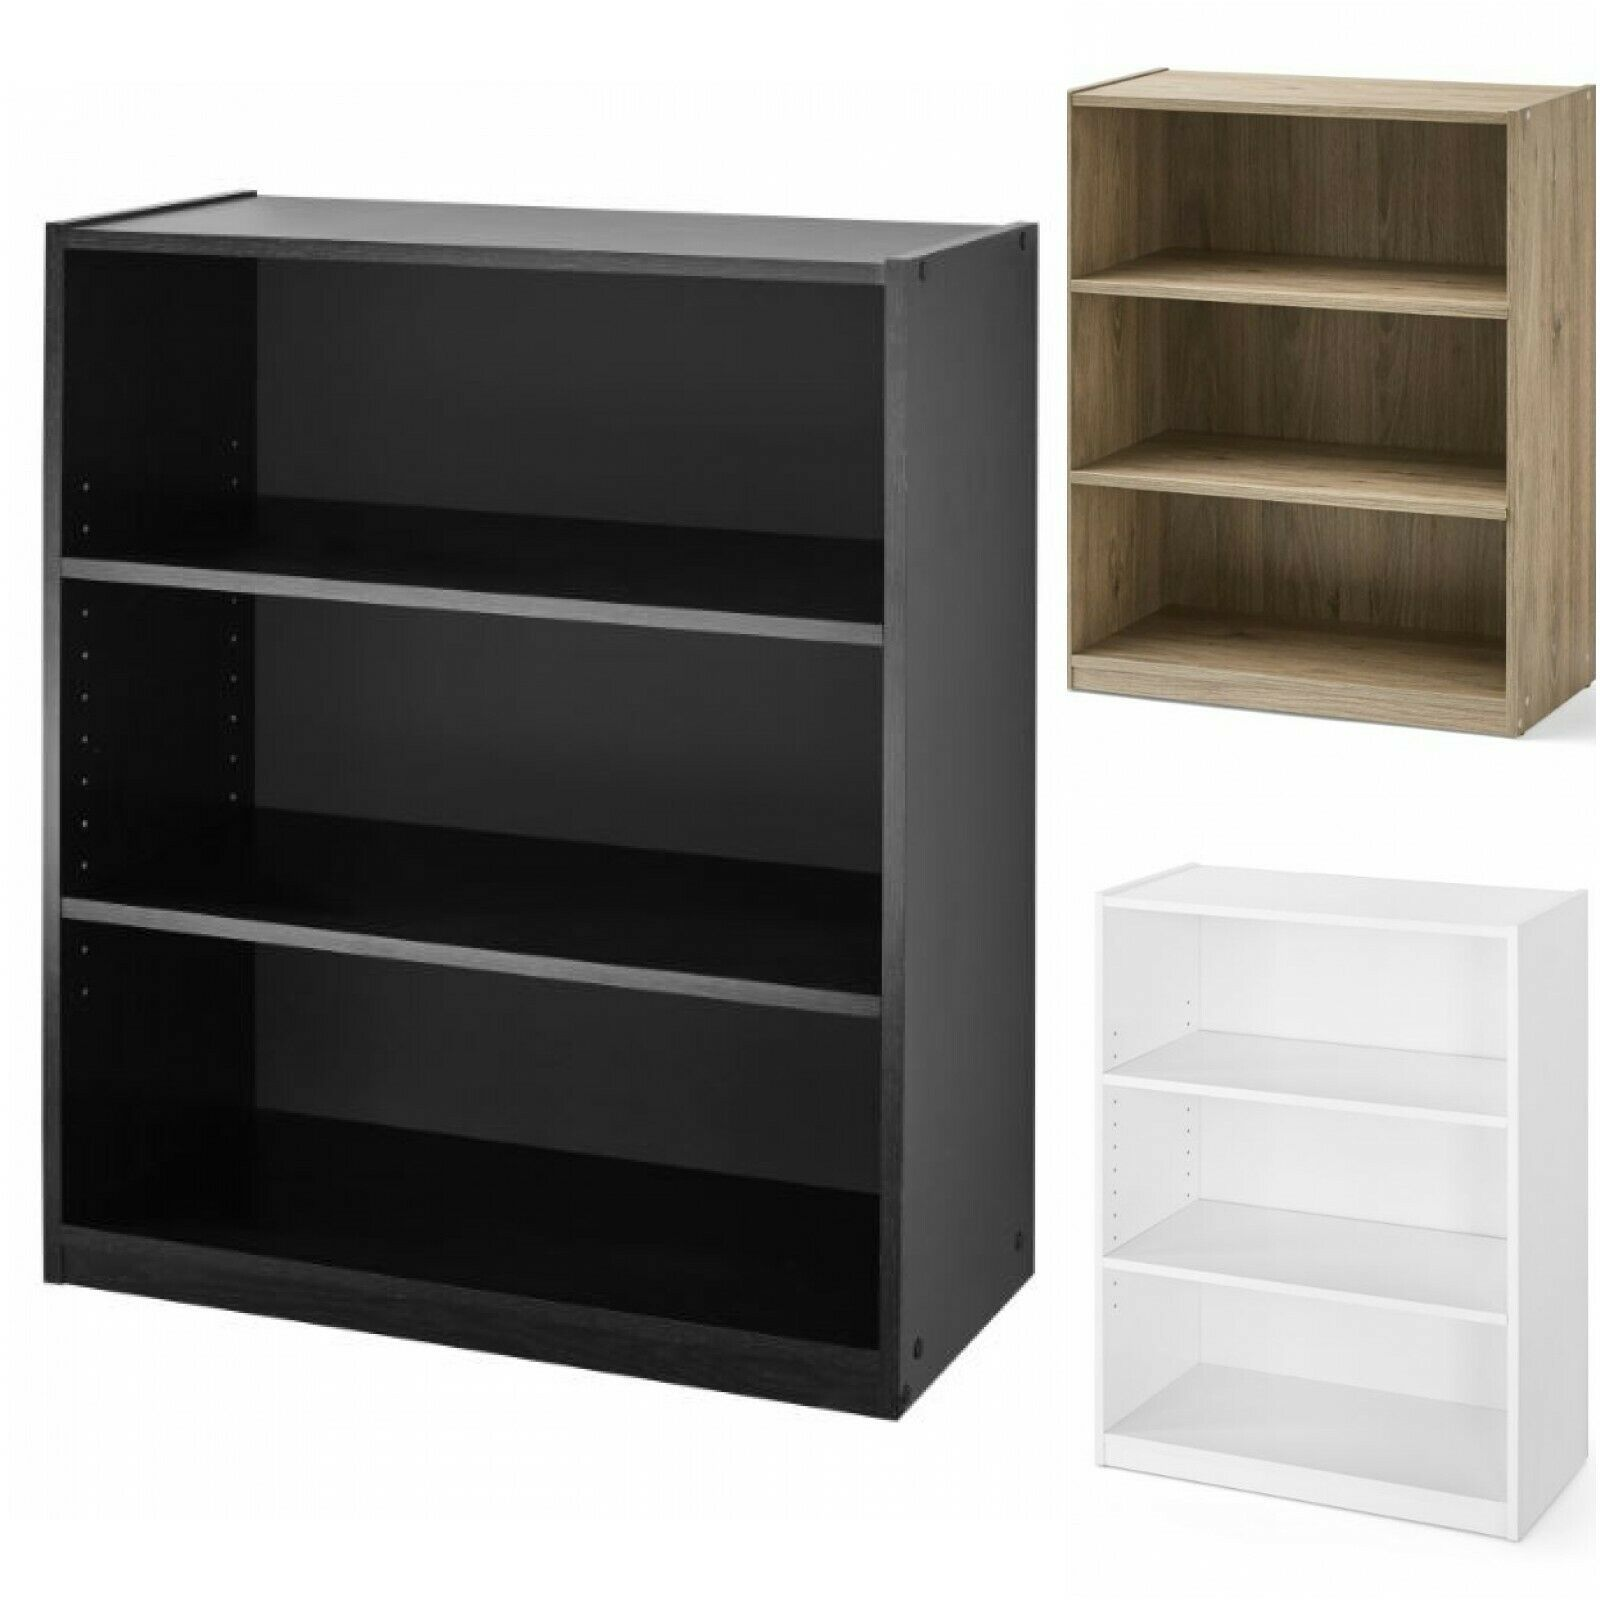 Details About Adjustable Bookcase Low Bookshelf 3 Shelf Storage Shelving Book Display Small In 2020 Adjustable